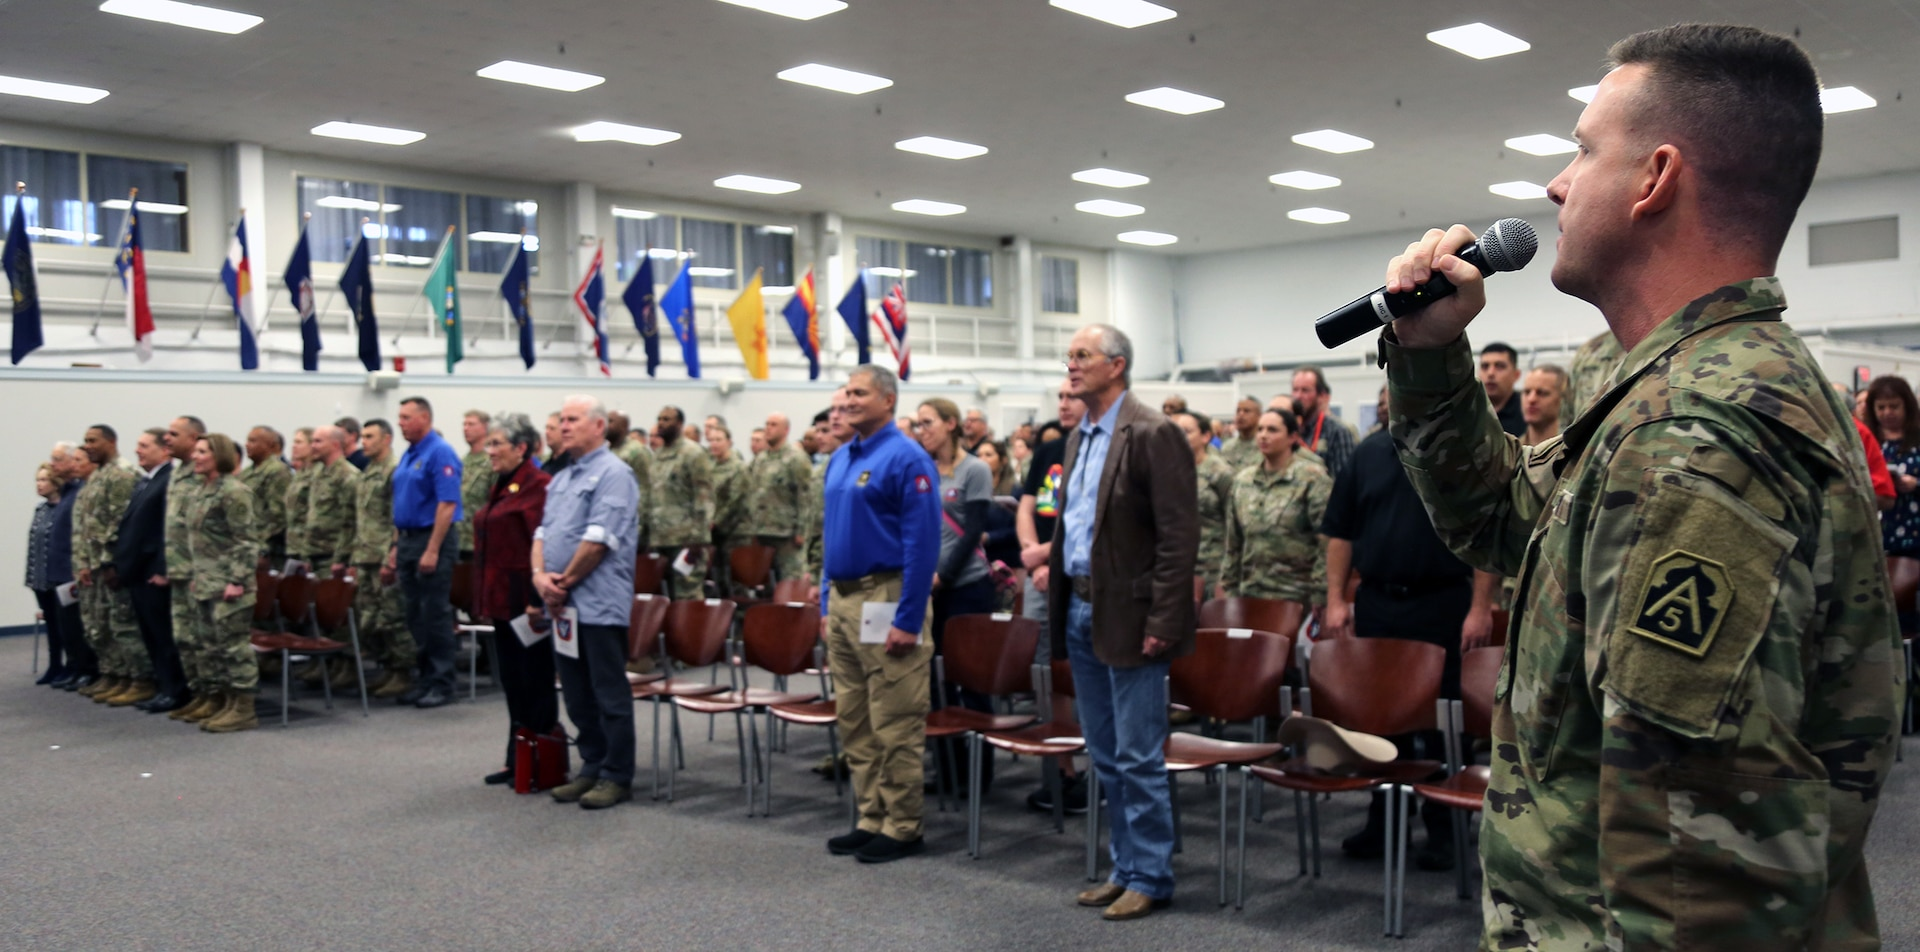 """First Sgt. Scott Boyle sings the National Anthem during the U.S. Army North (Fifth Army) 77th birthday celebration at the Military & Family Readiness Center at JBSA-Fort Sam Houston Jan. 10. Boyle is the first sergeant for the 323rd U.S. Army Band """"Fort Sam's Own."""""""